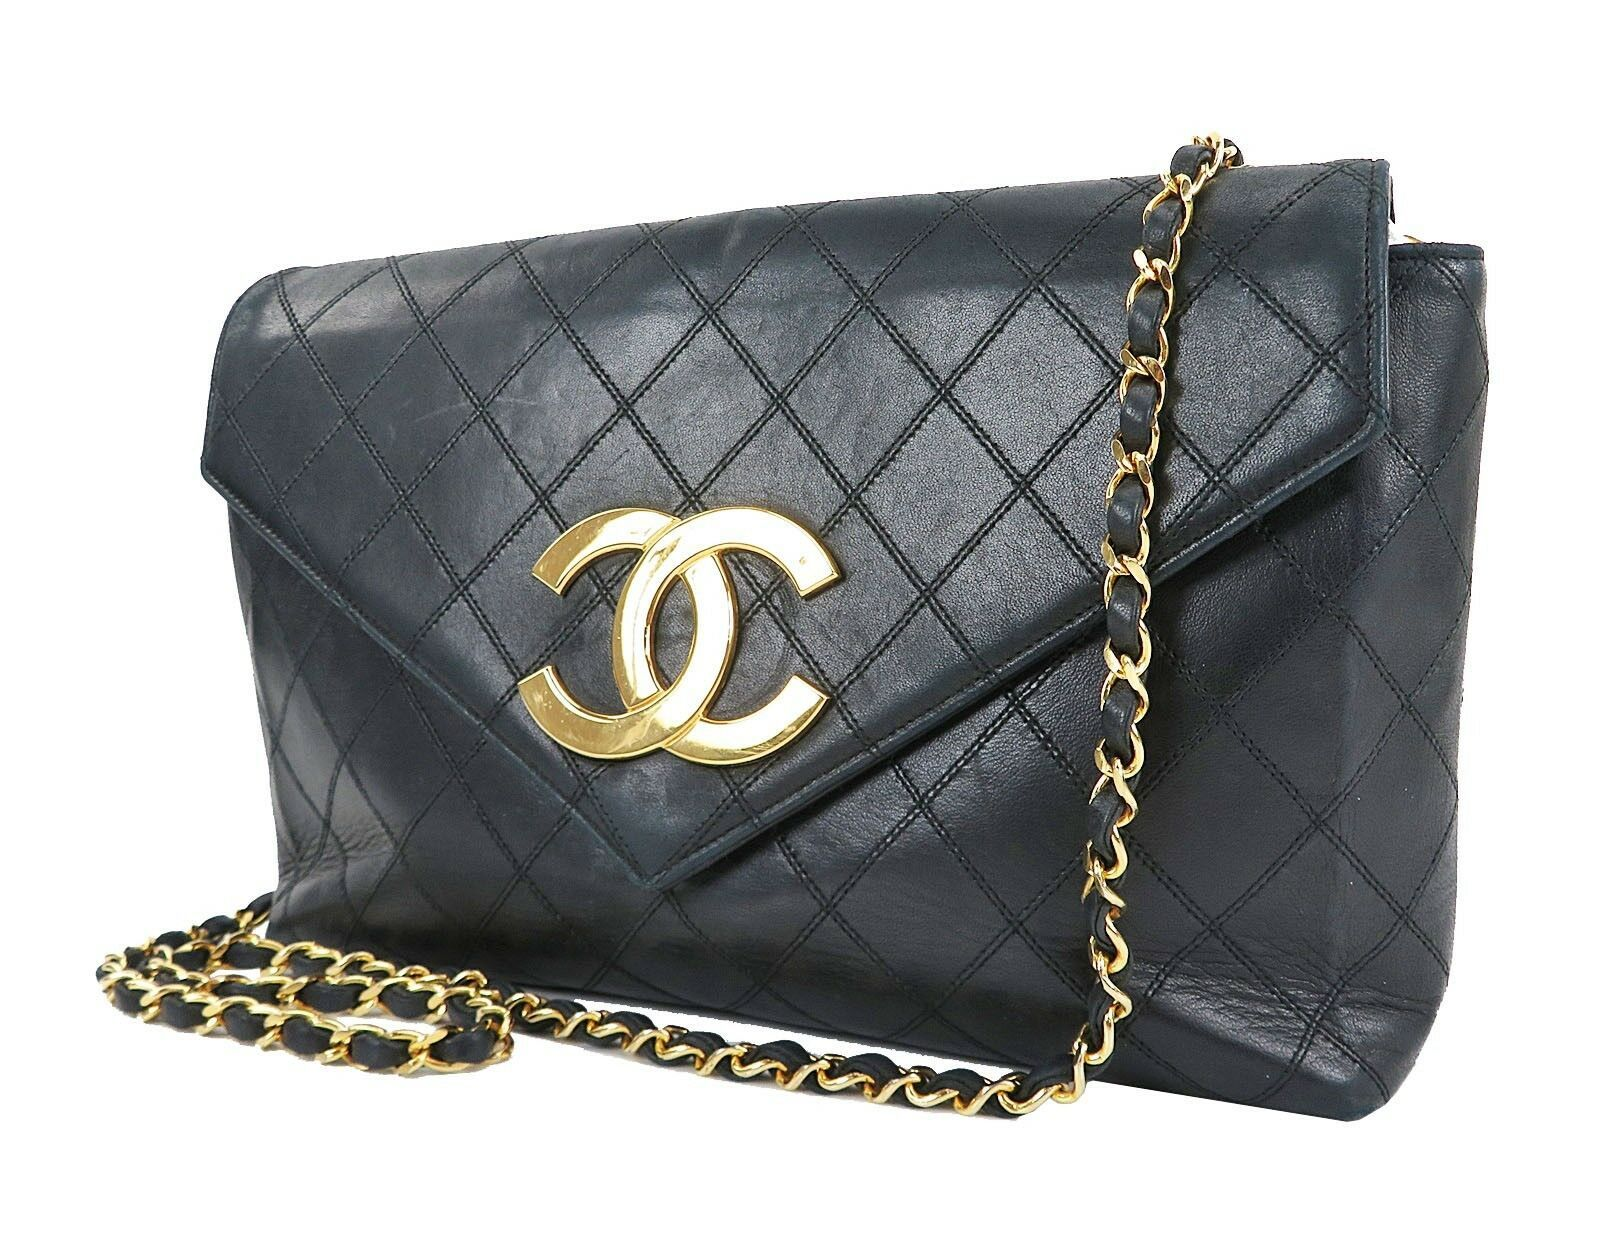 Auth CHANEL Black Quilted Lambskin Leather Chain Shoulder Flap Bag #29245A